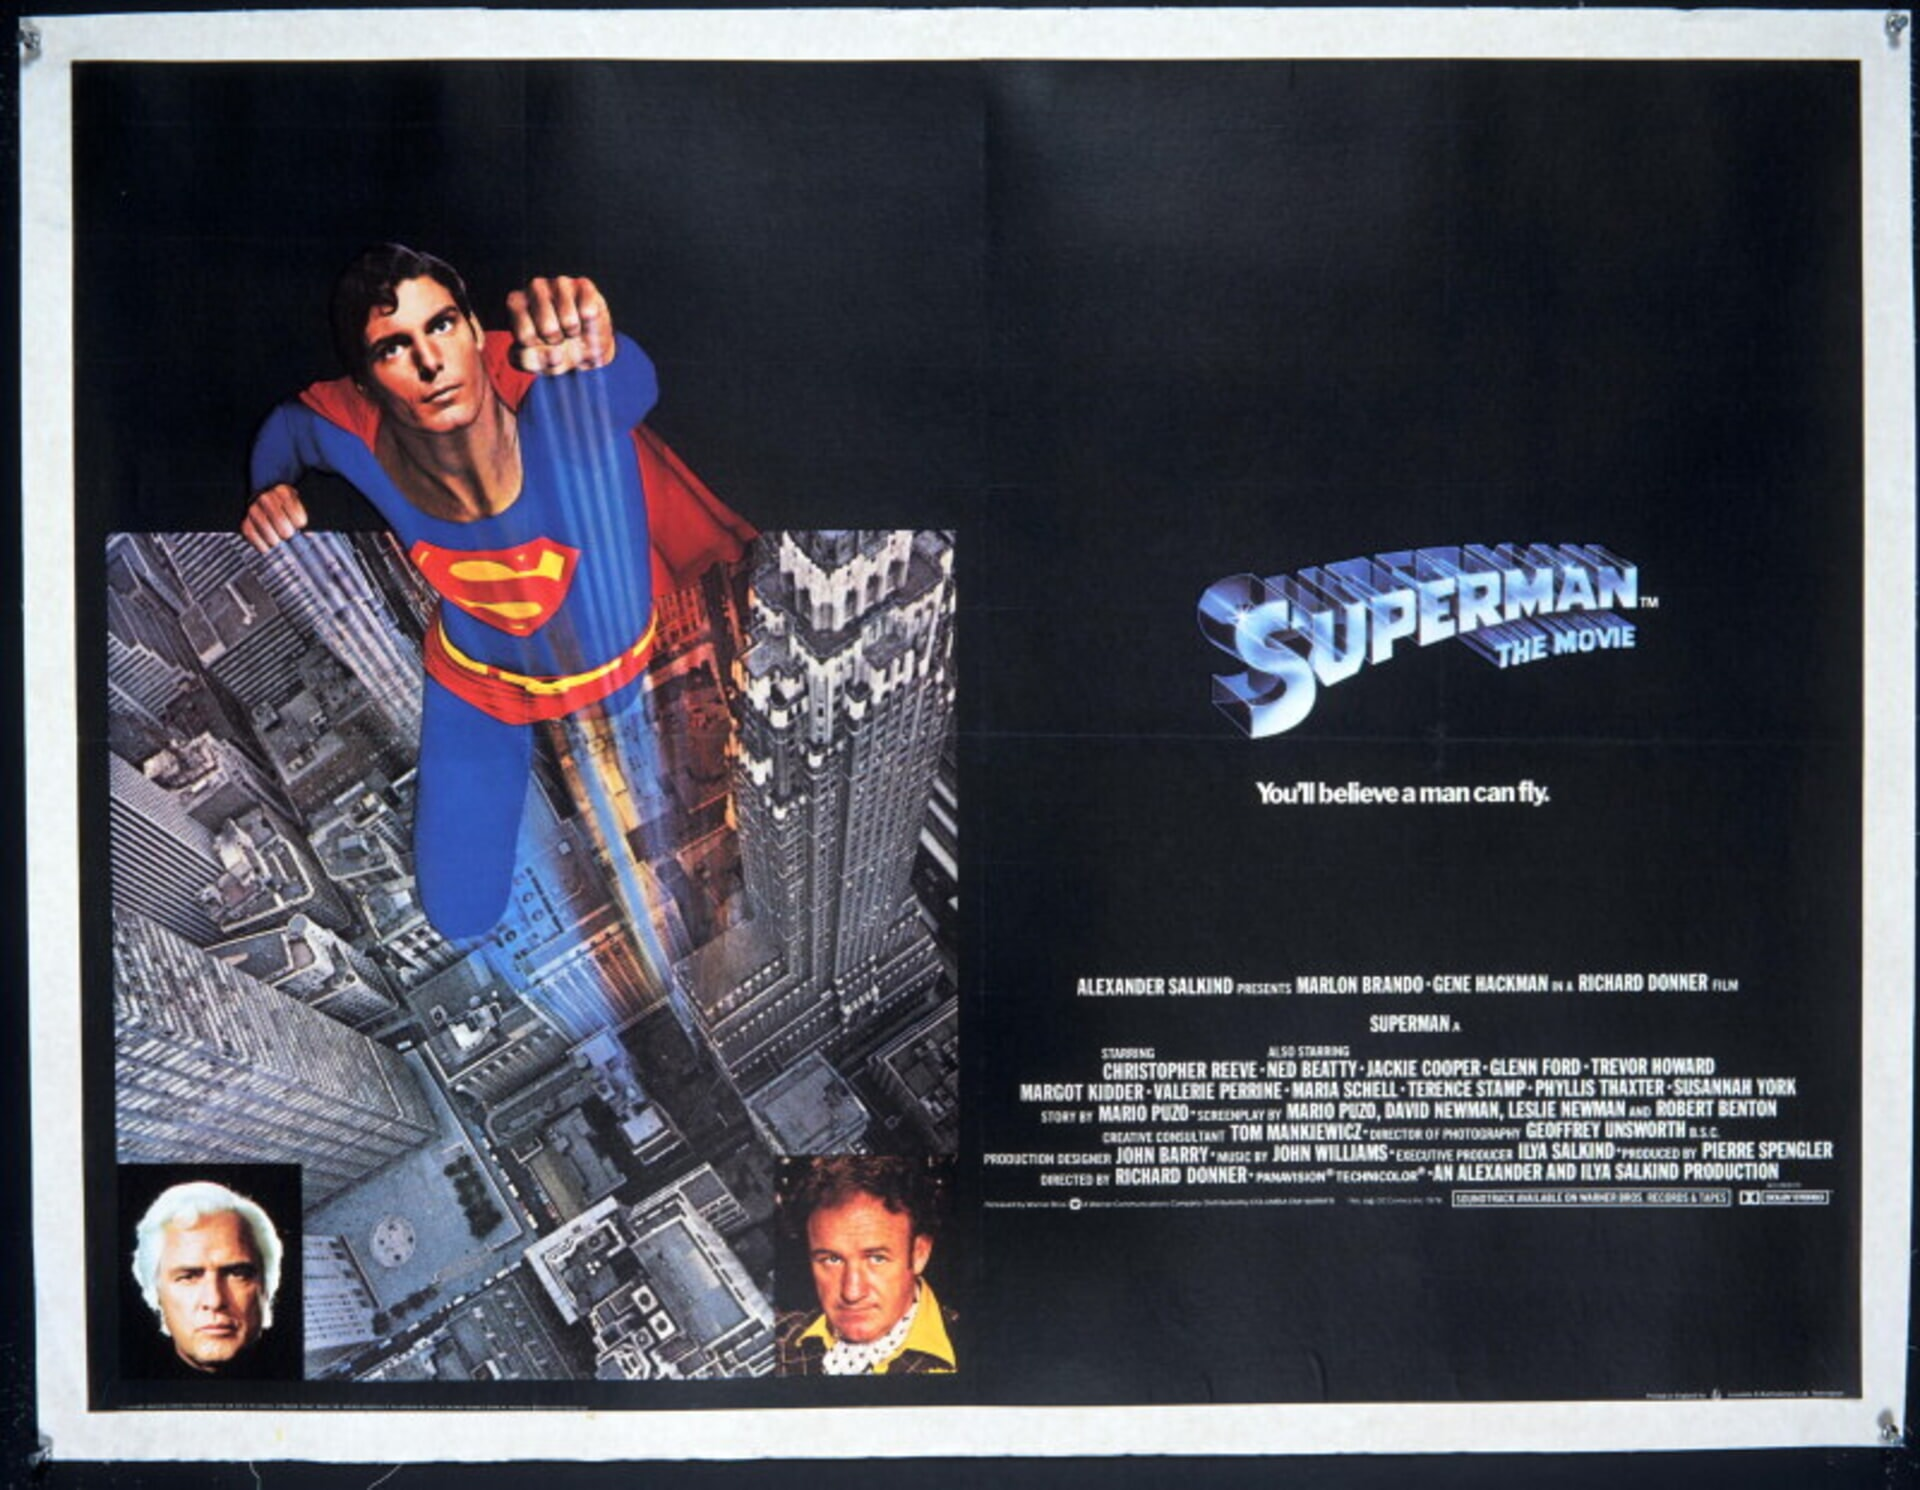 Superman: The Movie - Poster 3